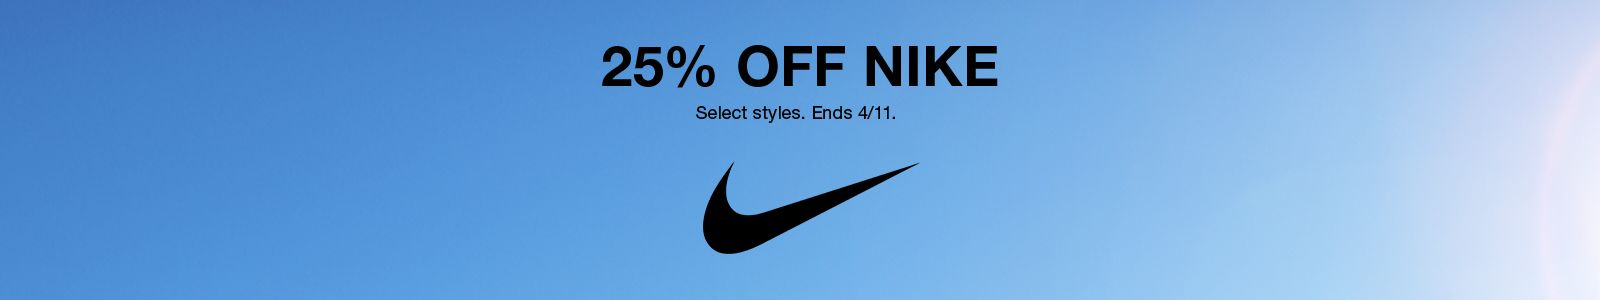 25% Off Nike, Select styles, Ends 4/11